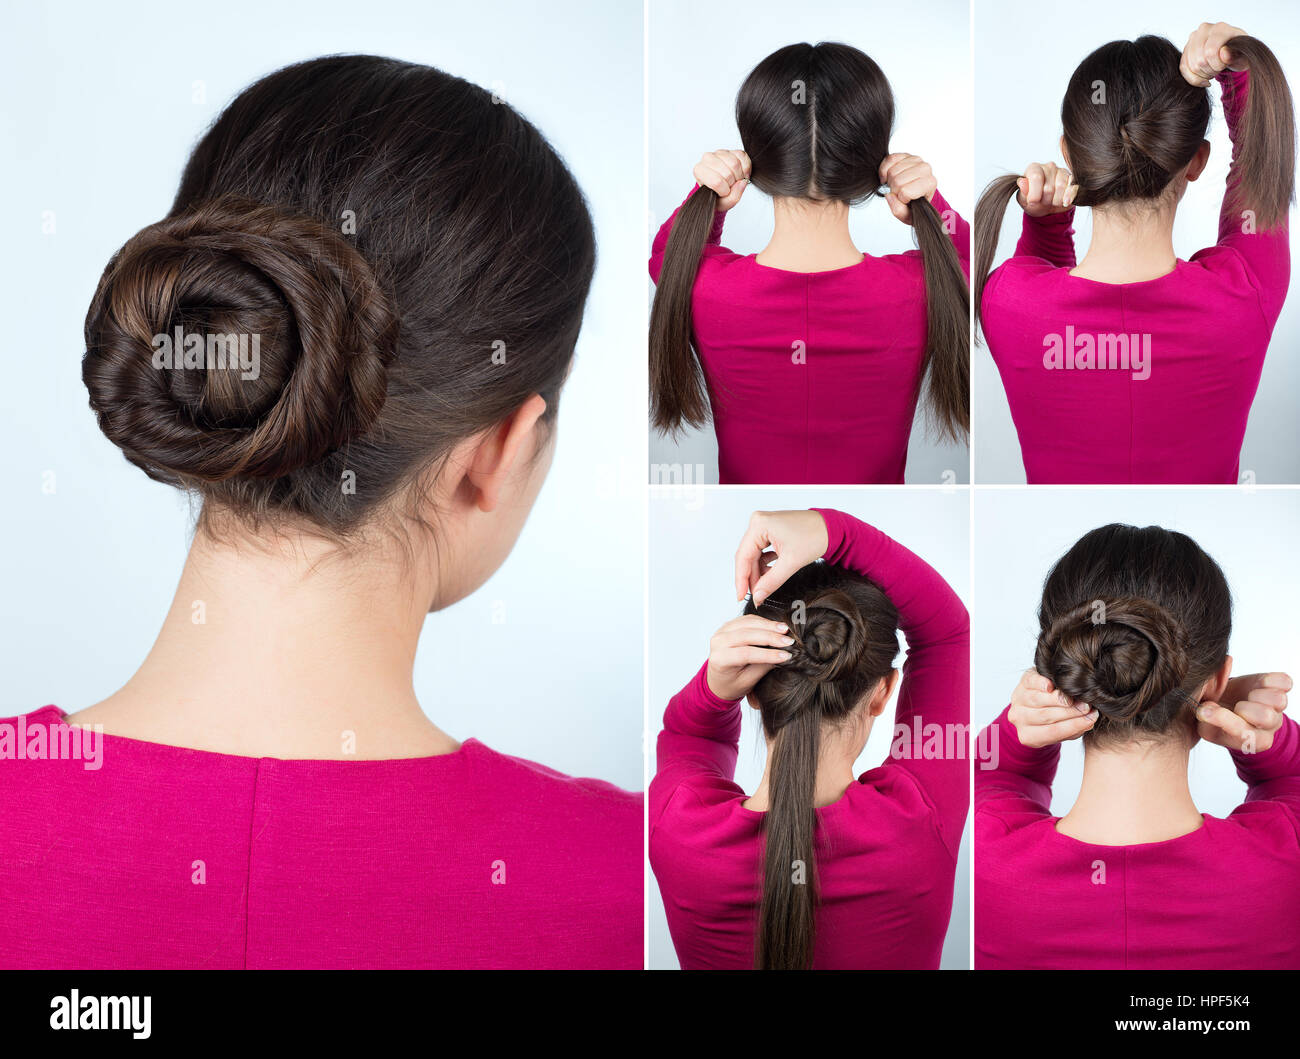 Hair tutorial step by step. Simple hairstyle twisted bun tutorial. Backstage technique of twist bun. Hairstyle for - Stock Image